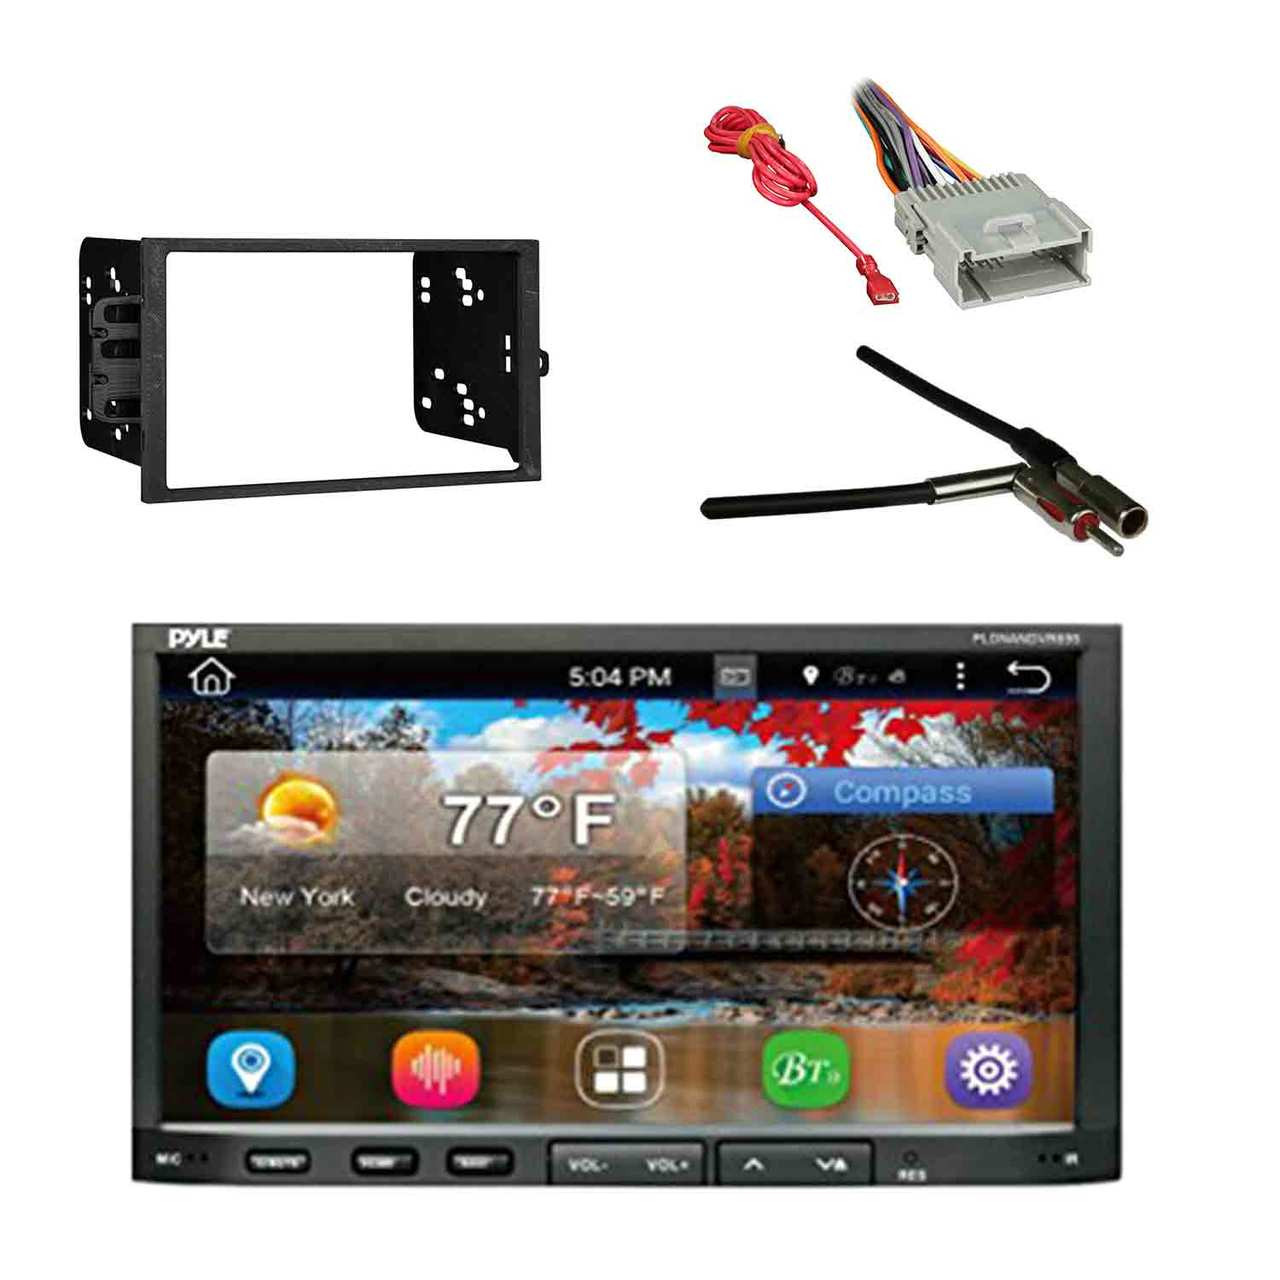 car stereo 2 din receiver with metra dash kit metra adapter pyle wiring harness s10  [ 1280 x 1280 Pixel ]